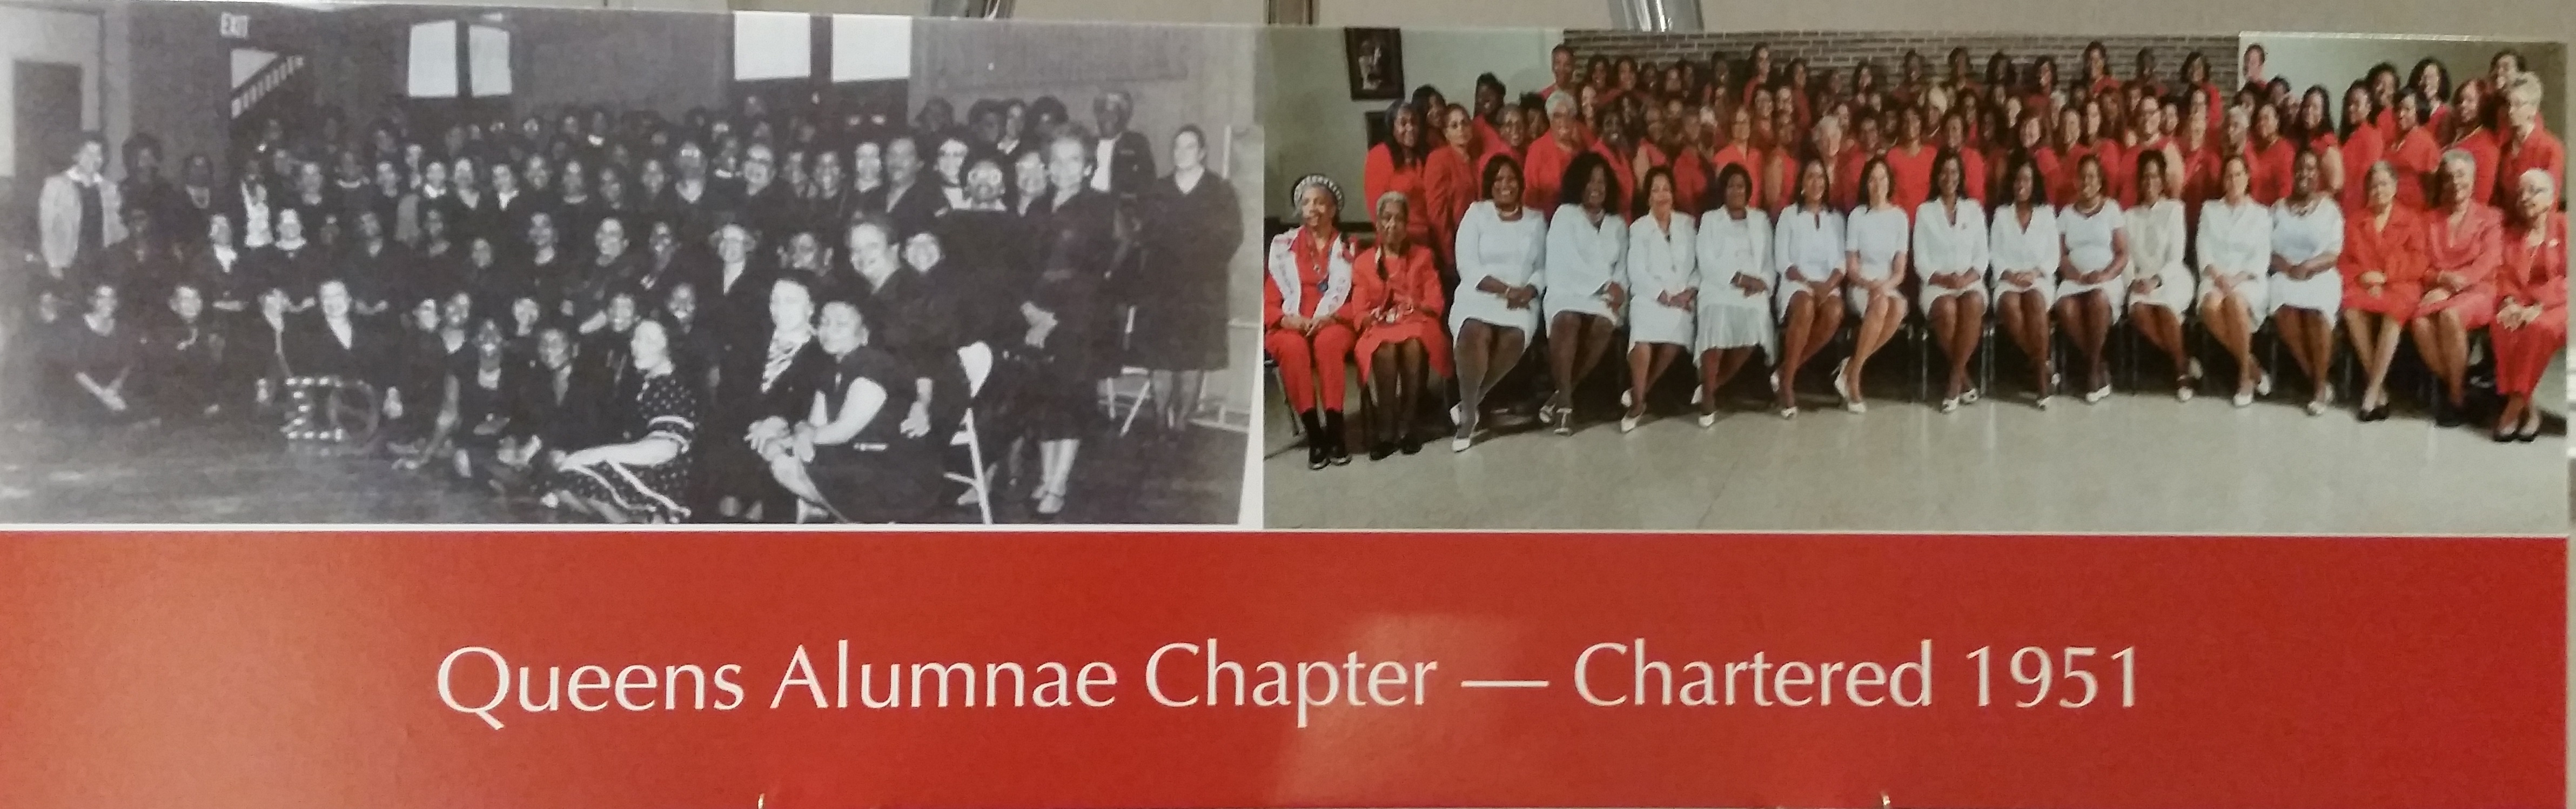 Queens Alumnae Chapter 2016